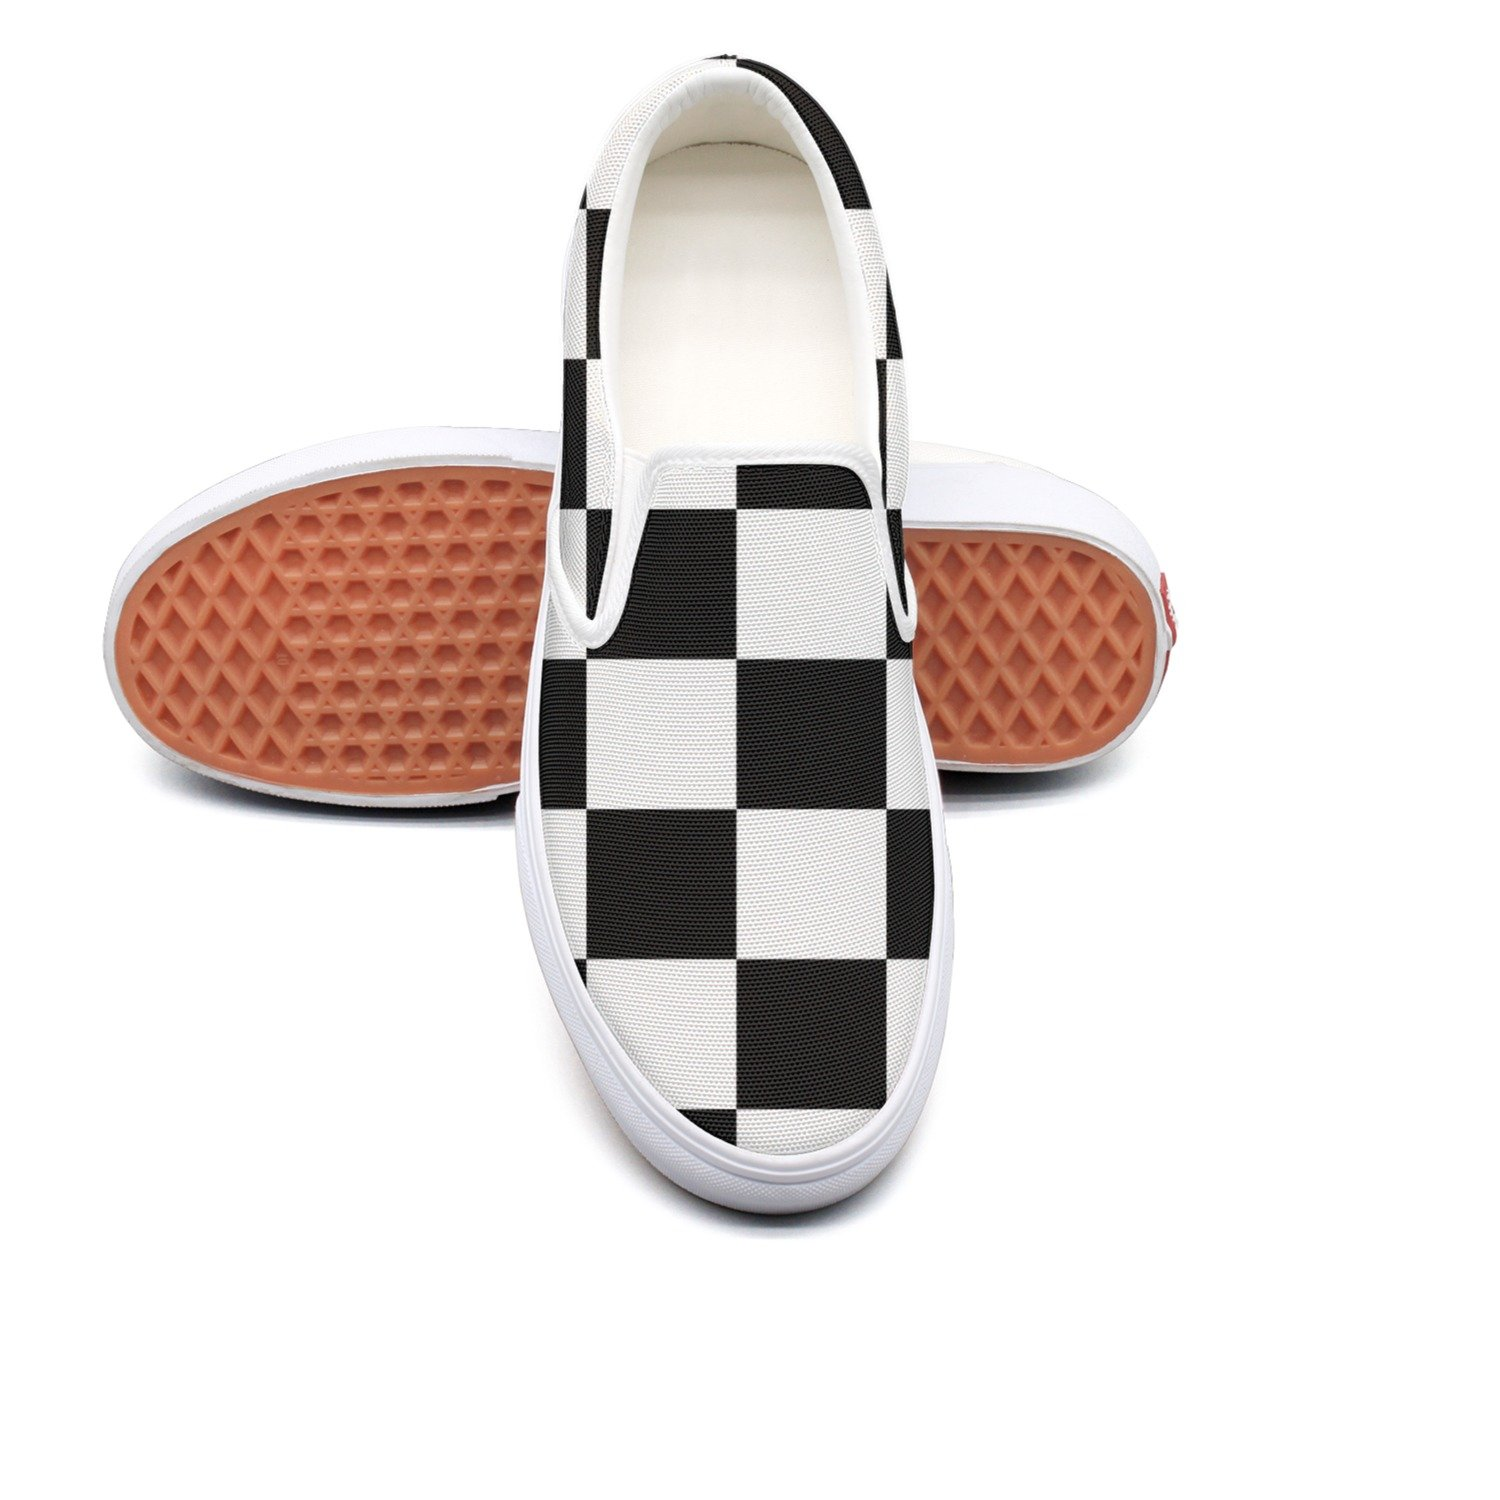 05d8cb988e2 Amazon.com  WhiteUnicorn Women s Checkered Flag Canvas Slip On Shoes Casual  Sneakers  Sports   Outdoors